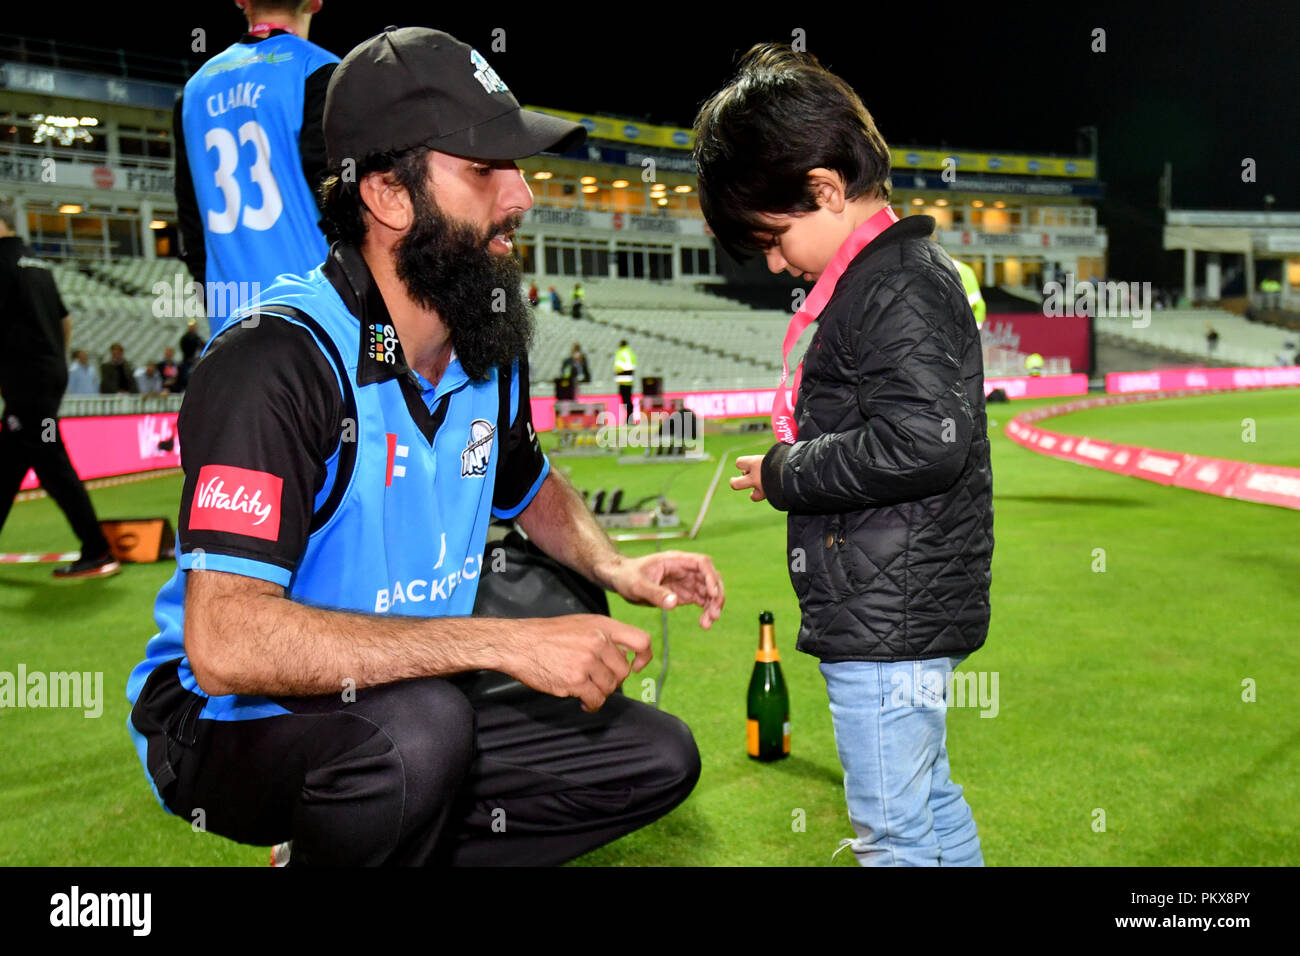 Moeen Ali Gives His Medal To A Young Boy As Worcestershire Rapids Celebrate Winning The Trophy During The Vitality T20 Blast Final On Finals Day At Edgbaston Birmingham Stock Photo Alamy